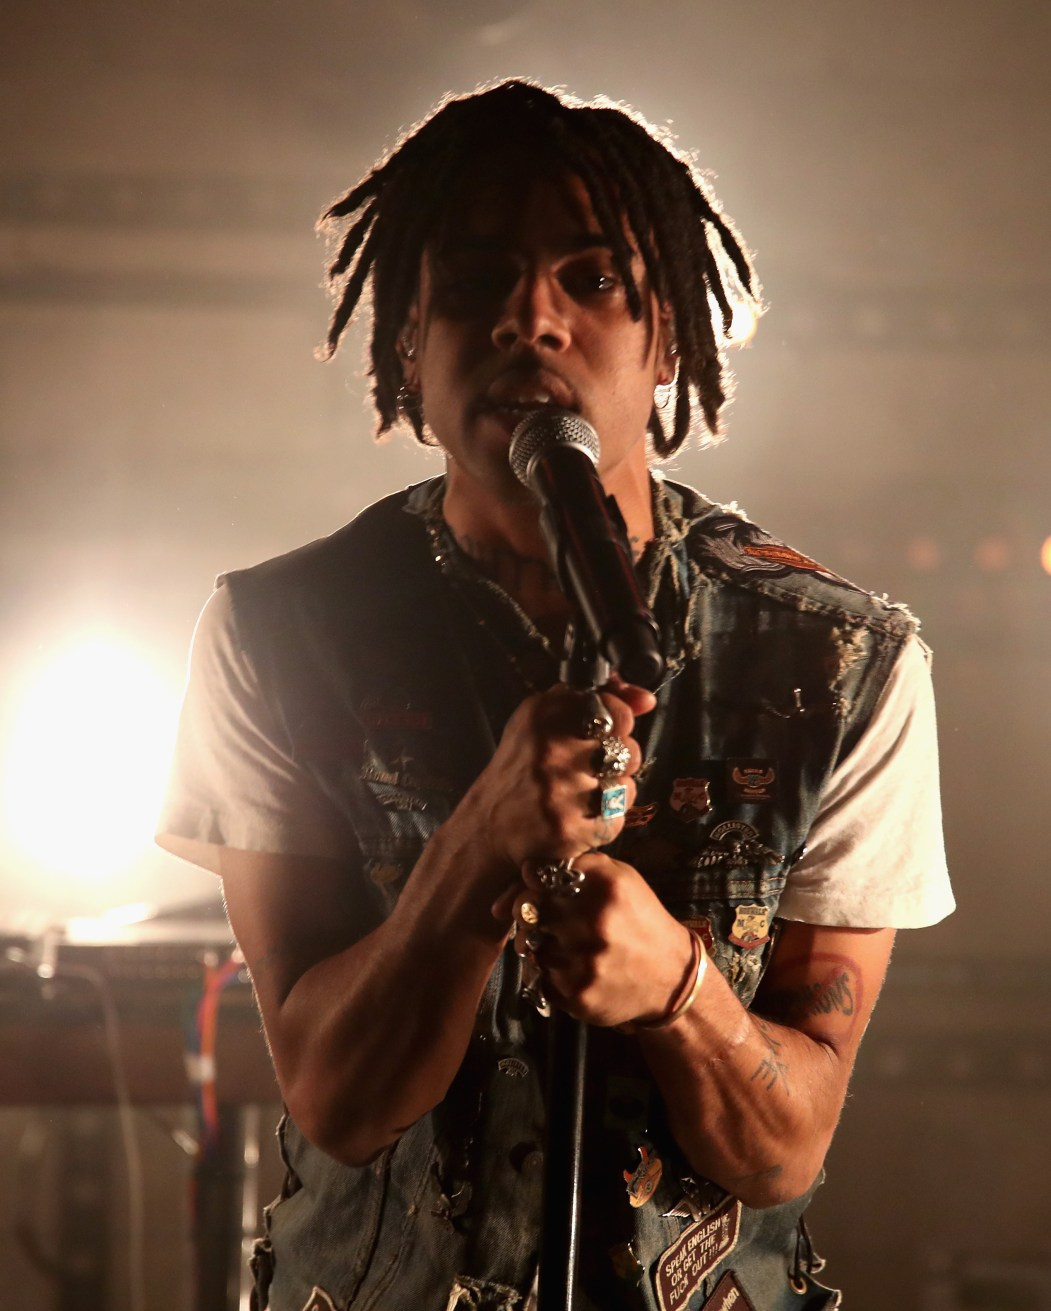 """LOS ANGELES, CA - NOVEMBER 10: Rapper Vic Mensa performs onstage at MTV's """"Wonderland"""" LIVE Show on November 10, 2016 in Los Angeles, California. (Photo by Randy Shropshire/Getty Images for MTV) *** Local Caption *** Vic Mensa"""